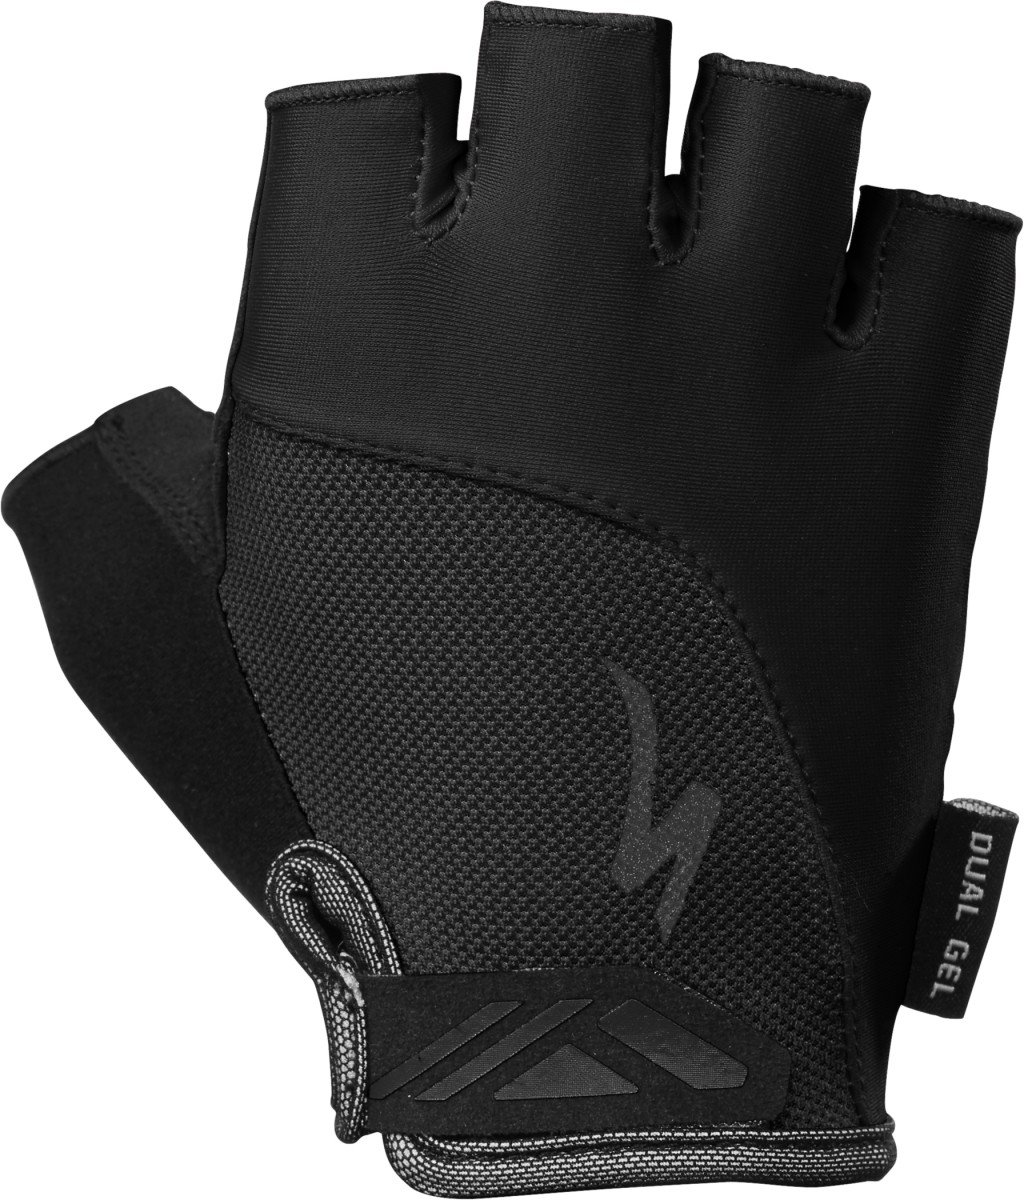 EAN-code: 0888818471409 Brand: SPECIALIZED Product: HANDSCHOEN MAAT S BG DUAL GEL DAMES ZWART (Part-No: 67019-1102) at cycleXperience.nl